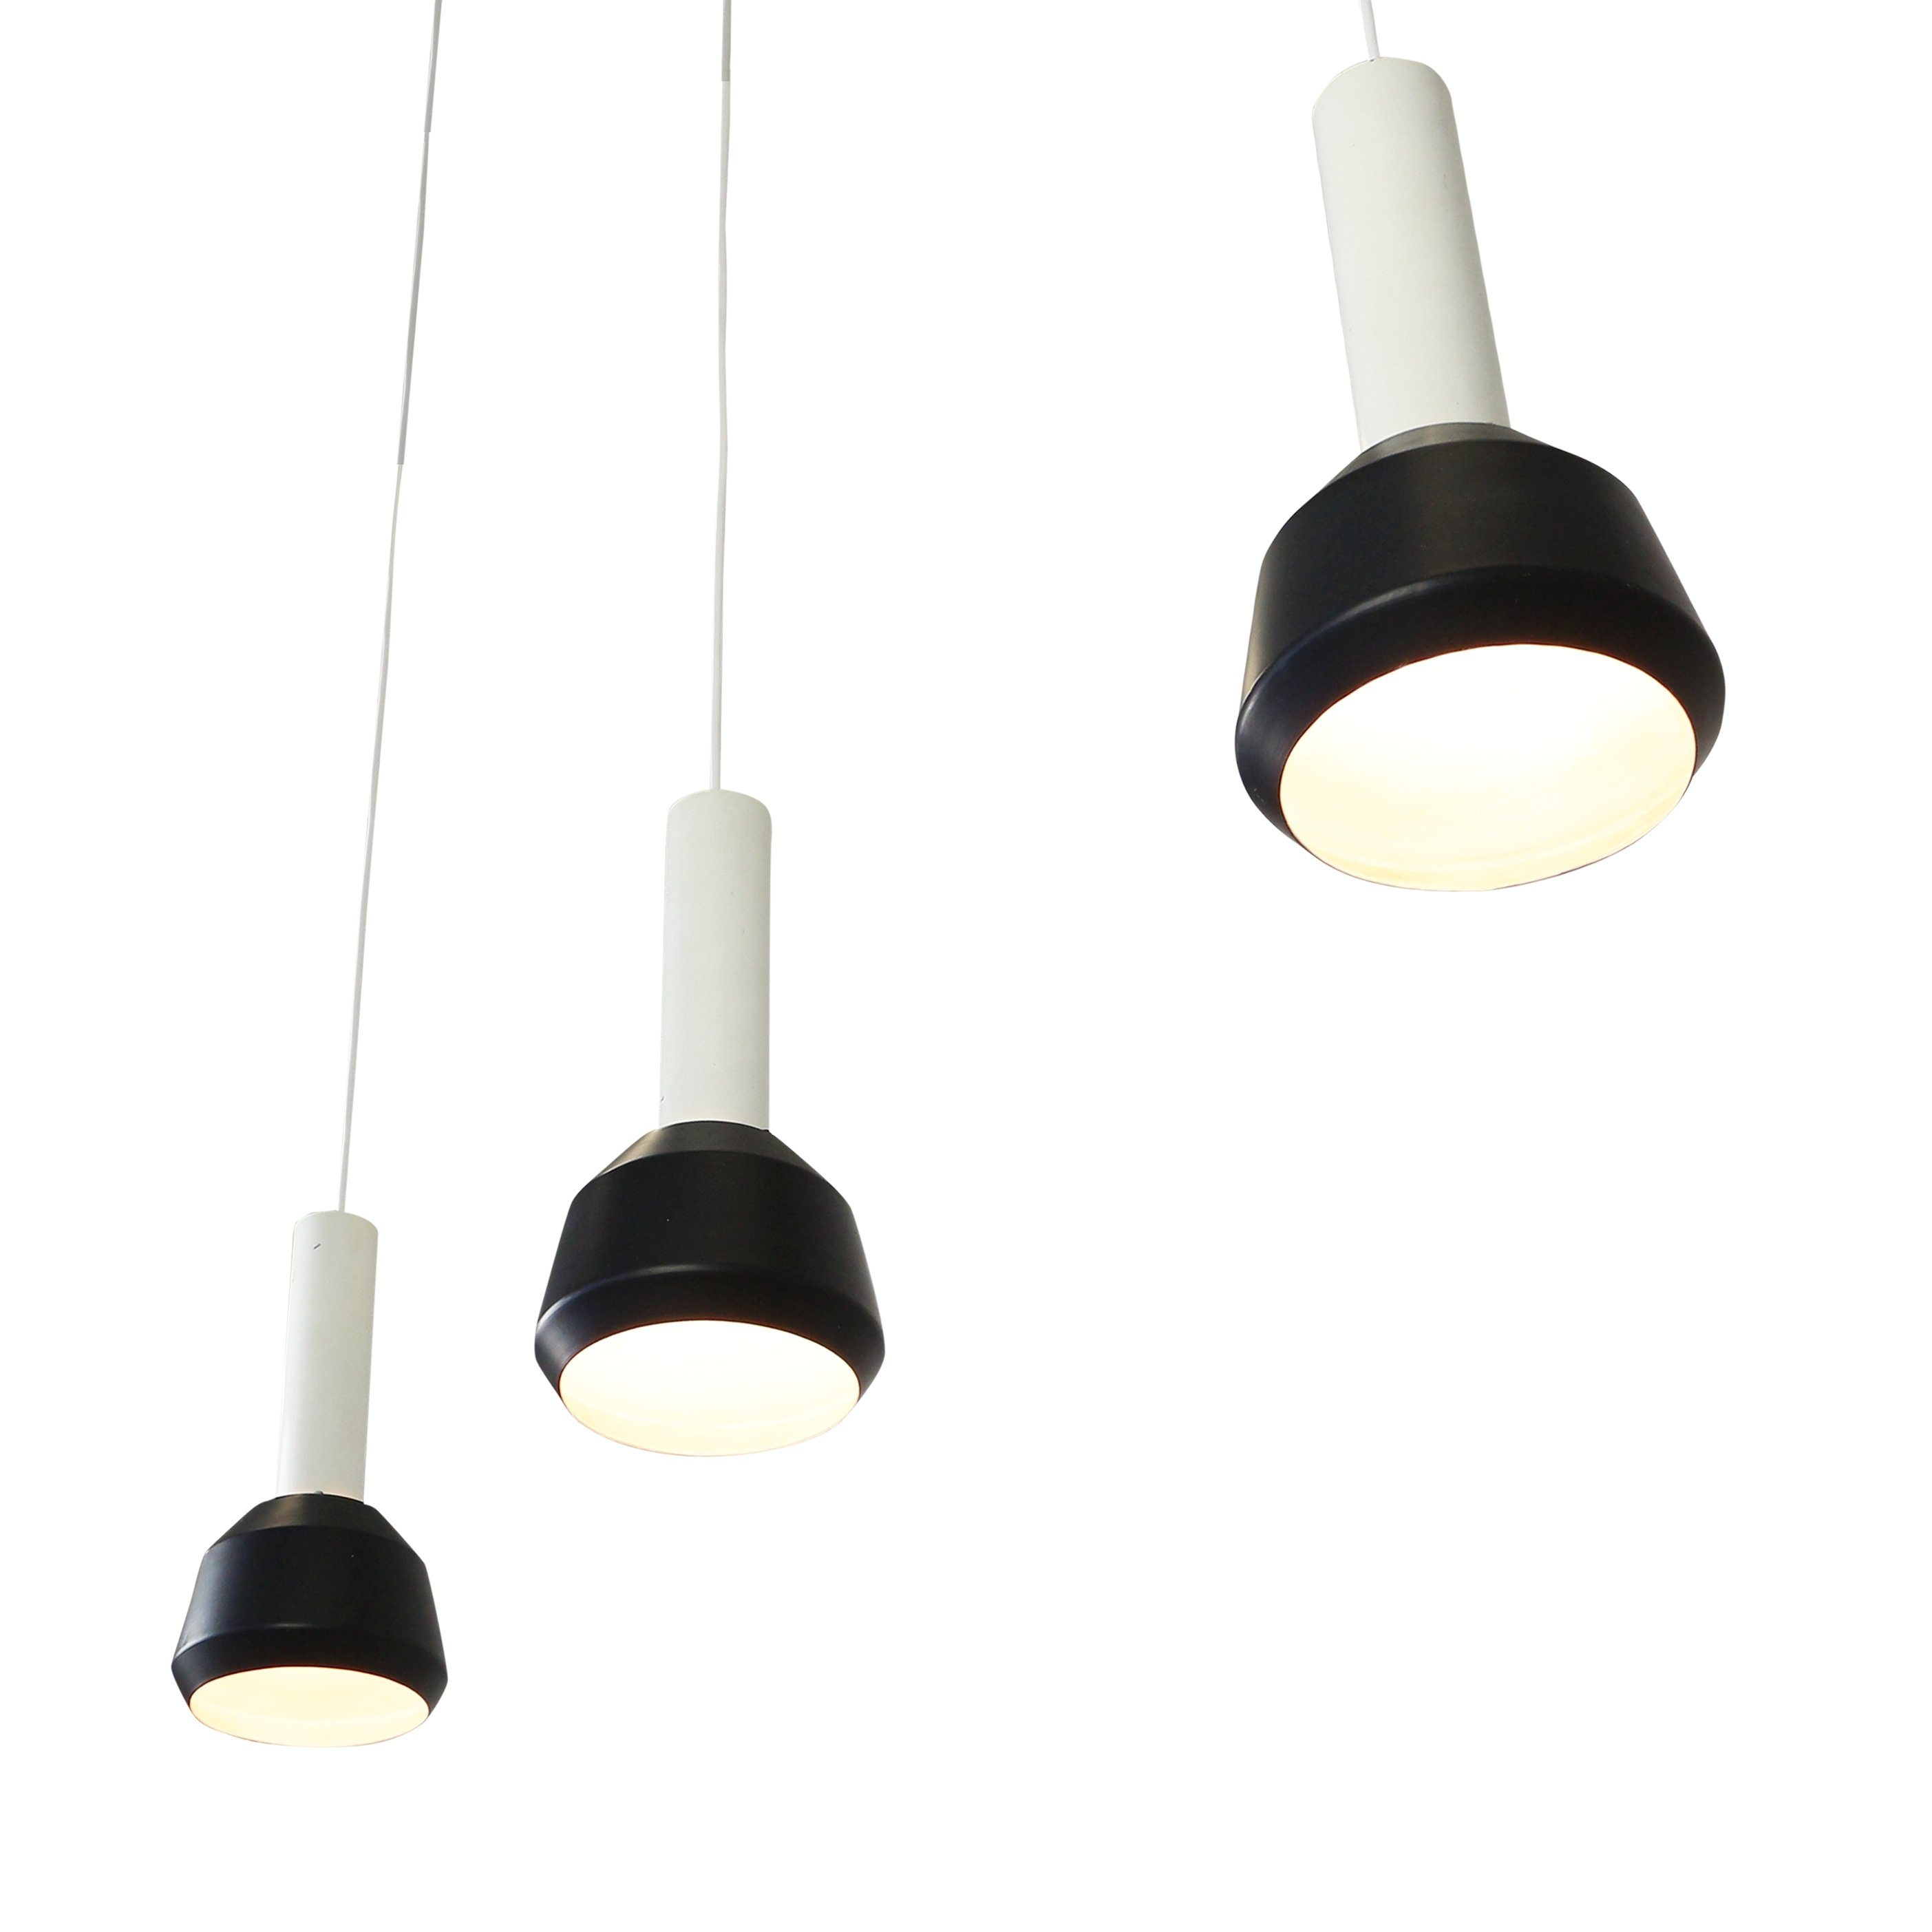 Set of 3 black and white philips pendant lights 1960s 1255 set of 3 black and white philips pendant lights 1960s aloadofball Images